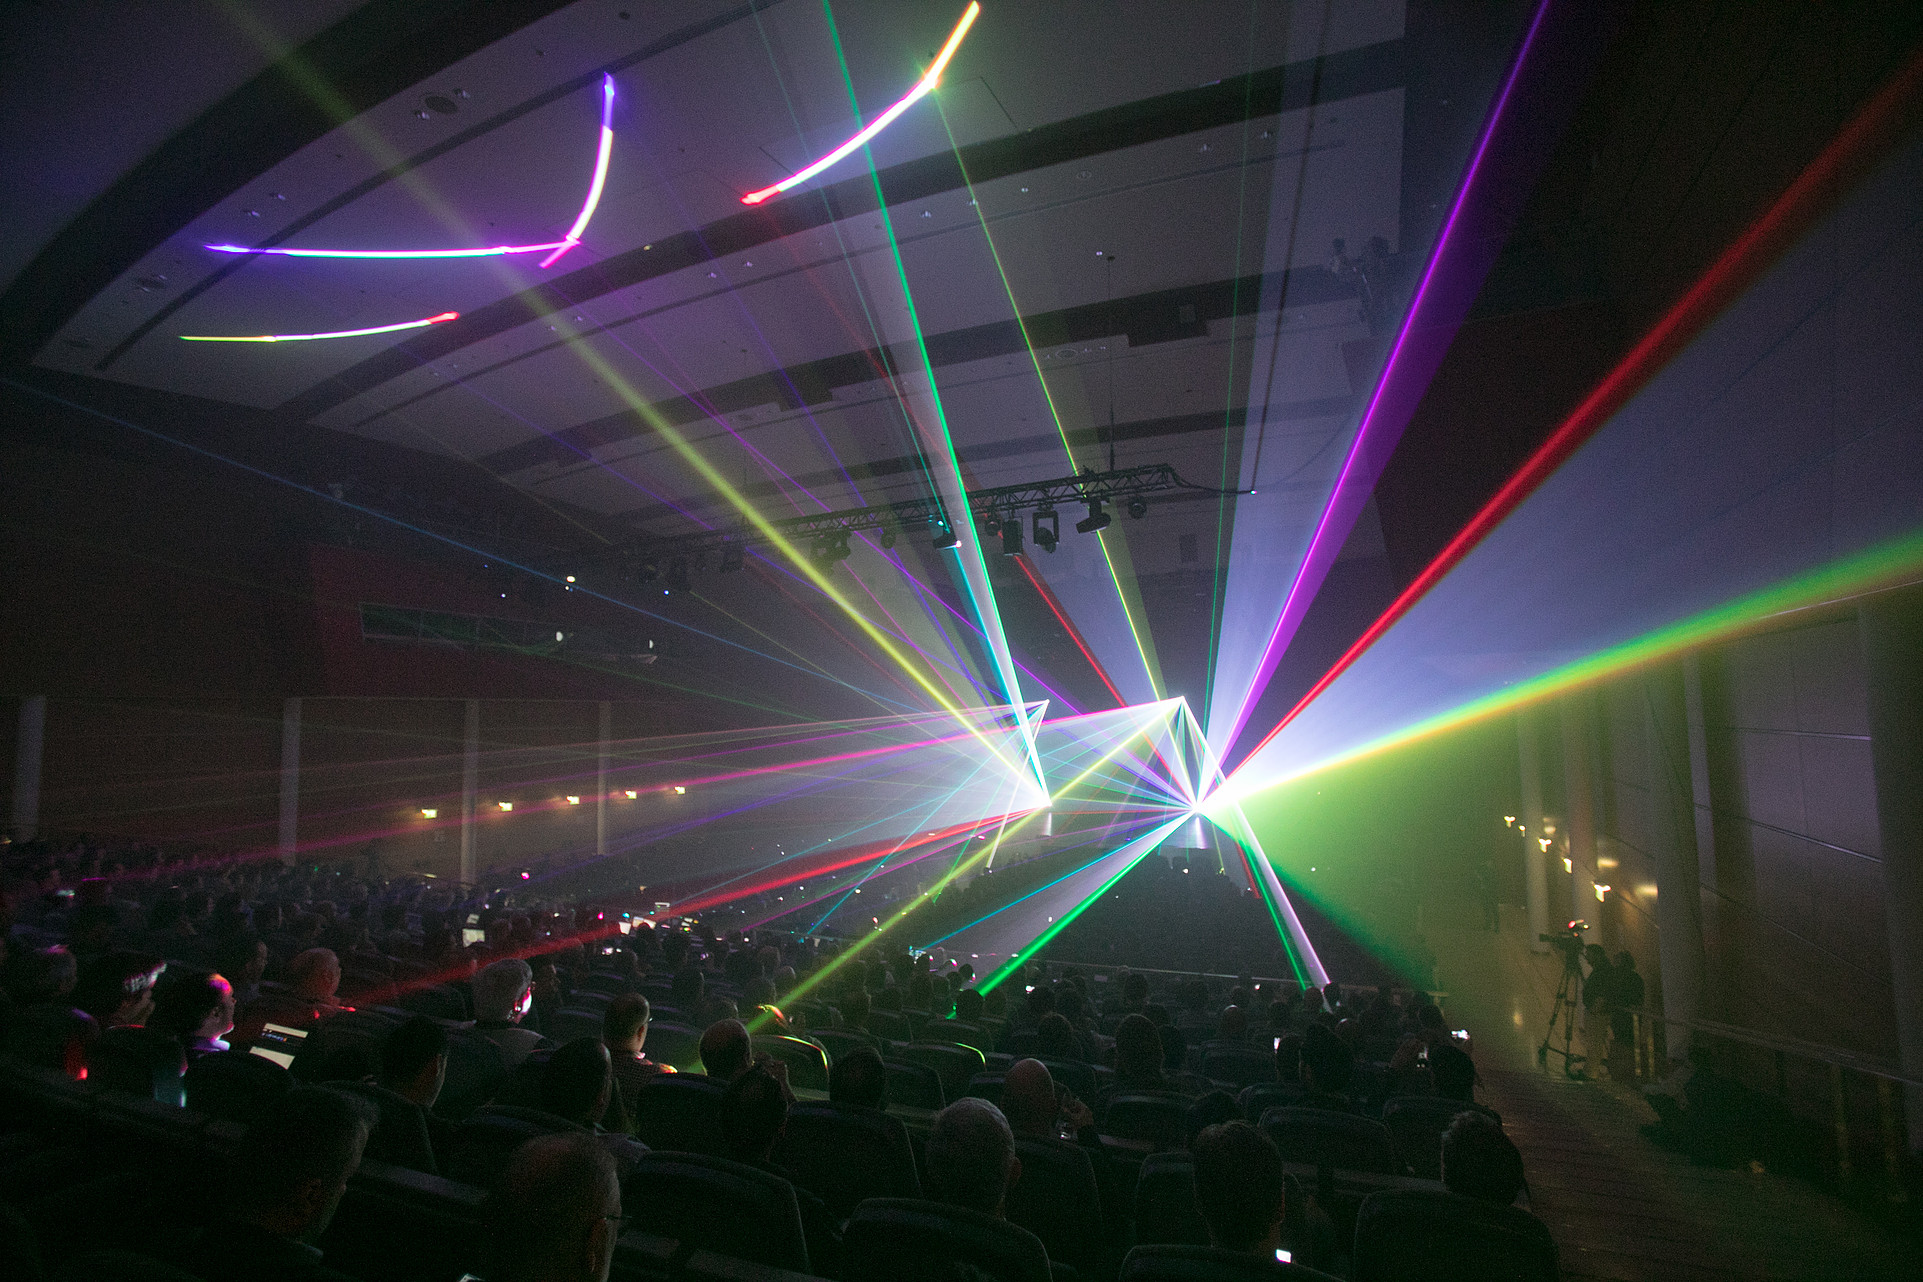 Hollywood Bowl Specal Event Laser Lights